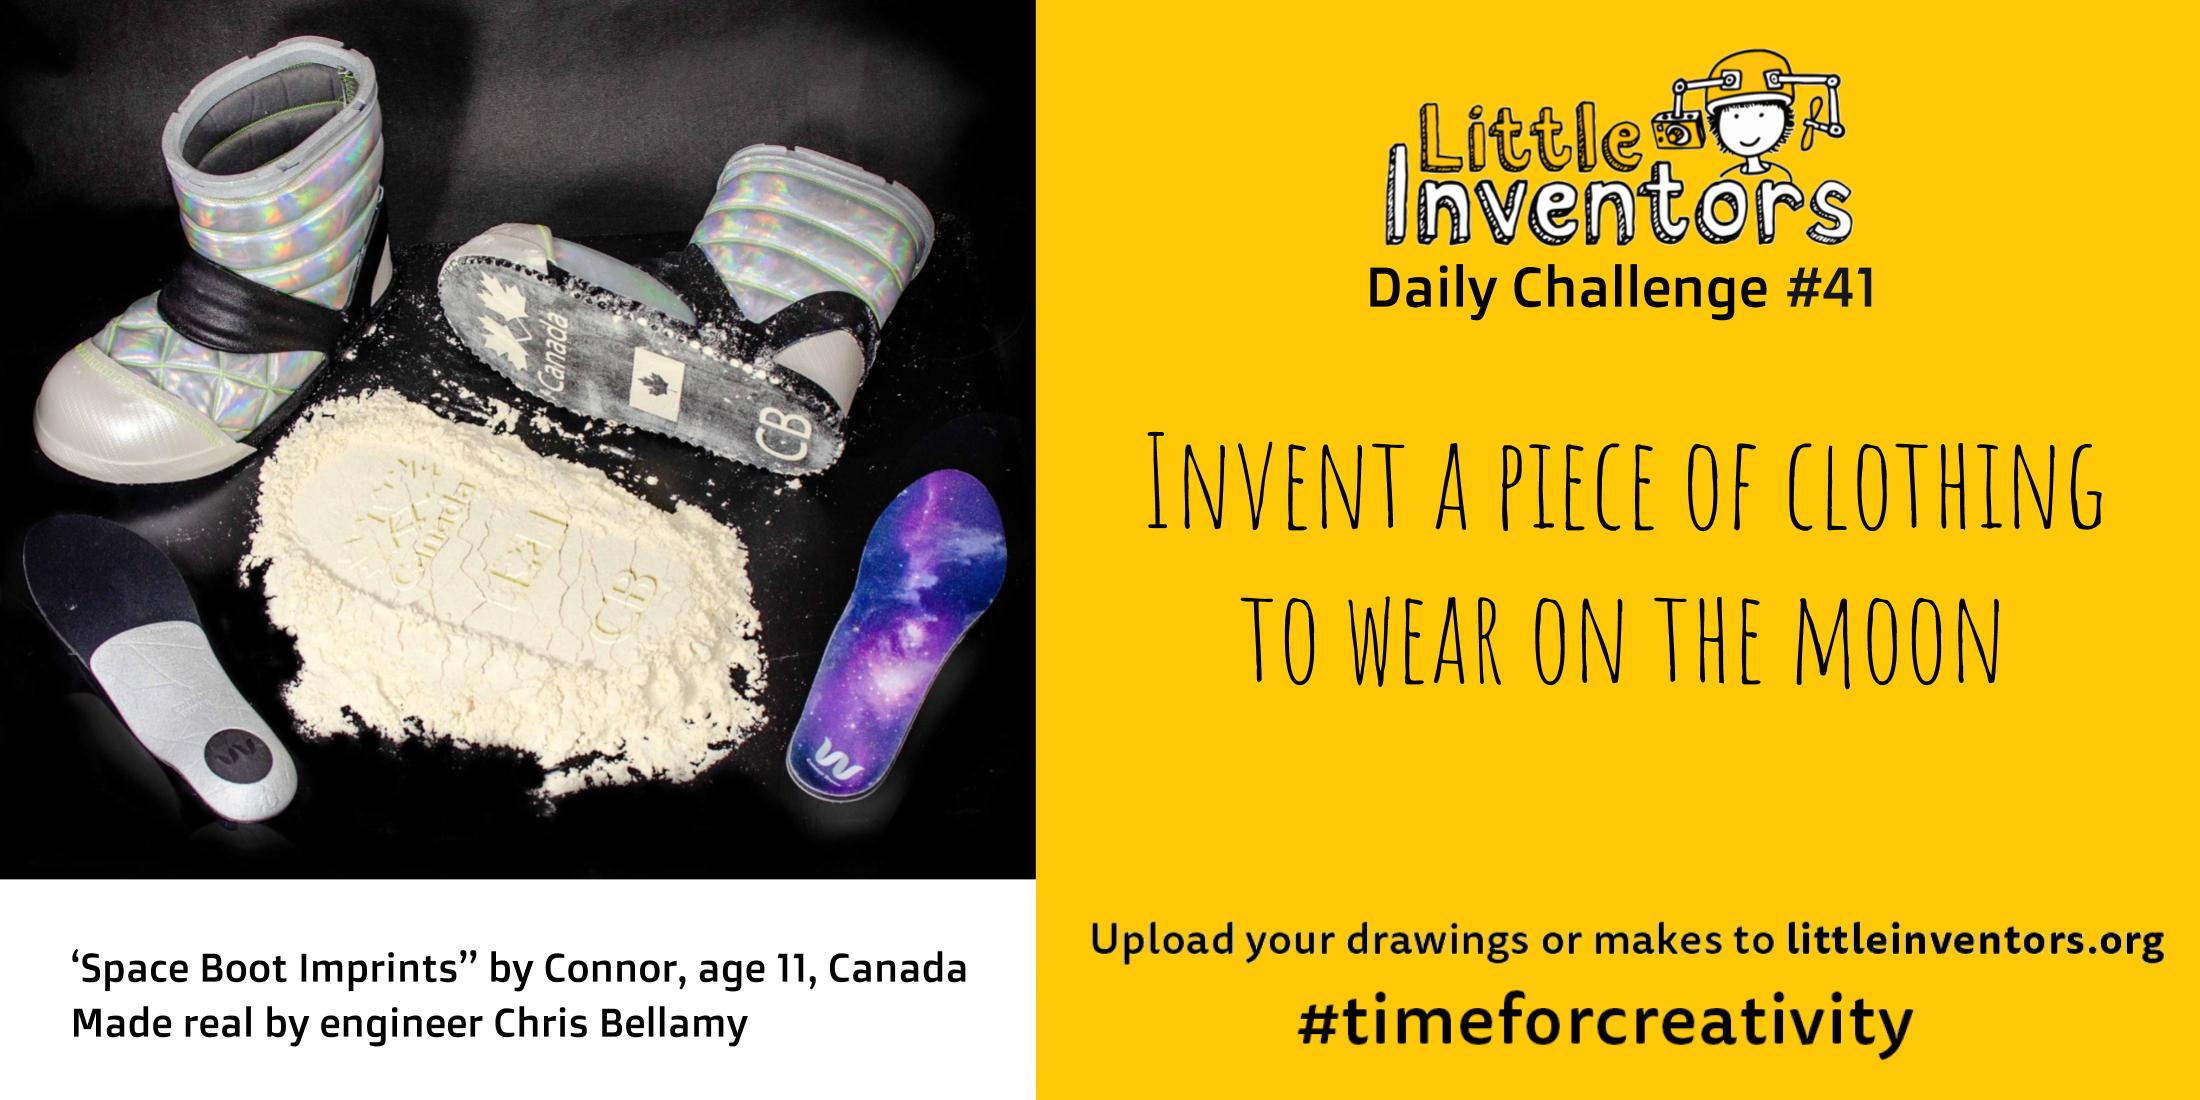 Little Inventors Challenge 41 : Invent a piece of clothing to wear on the moon